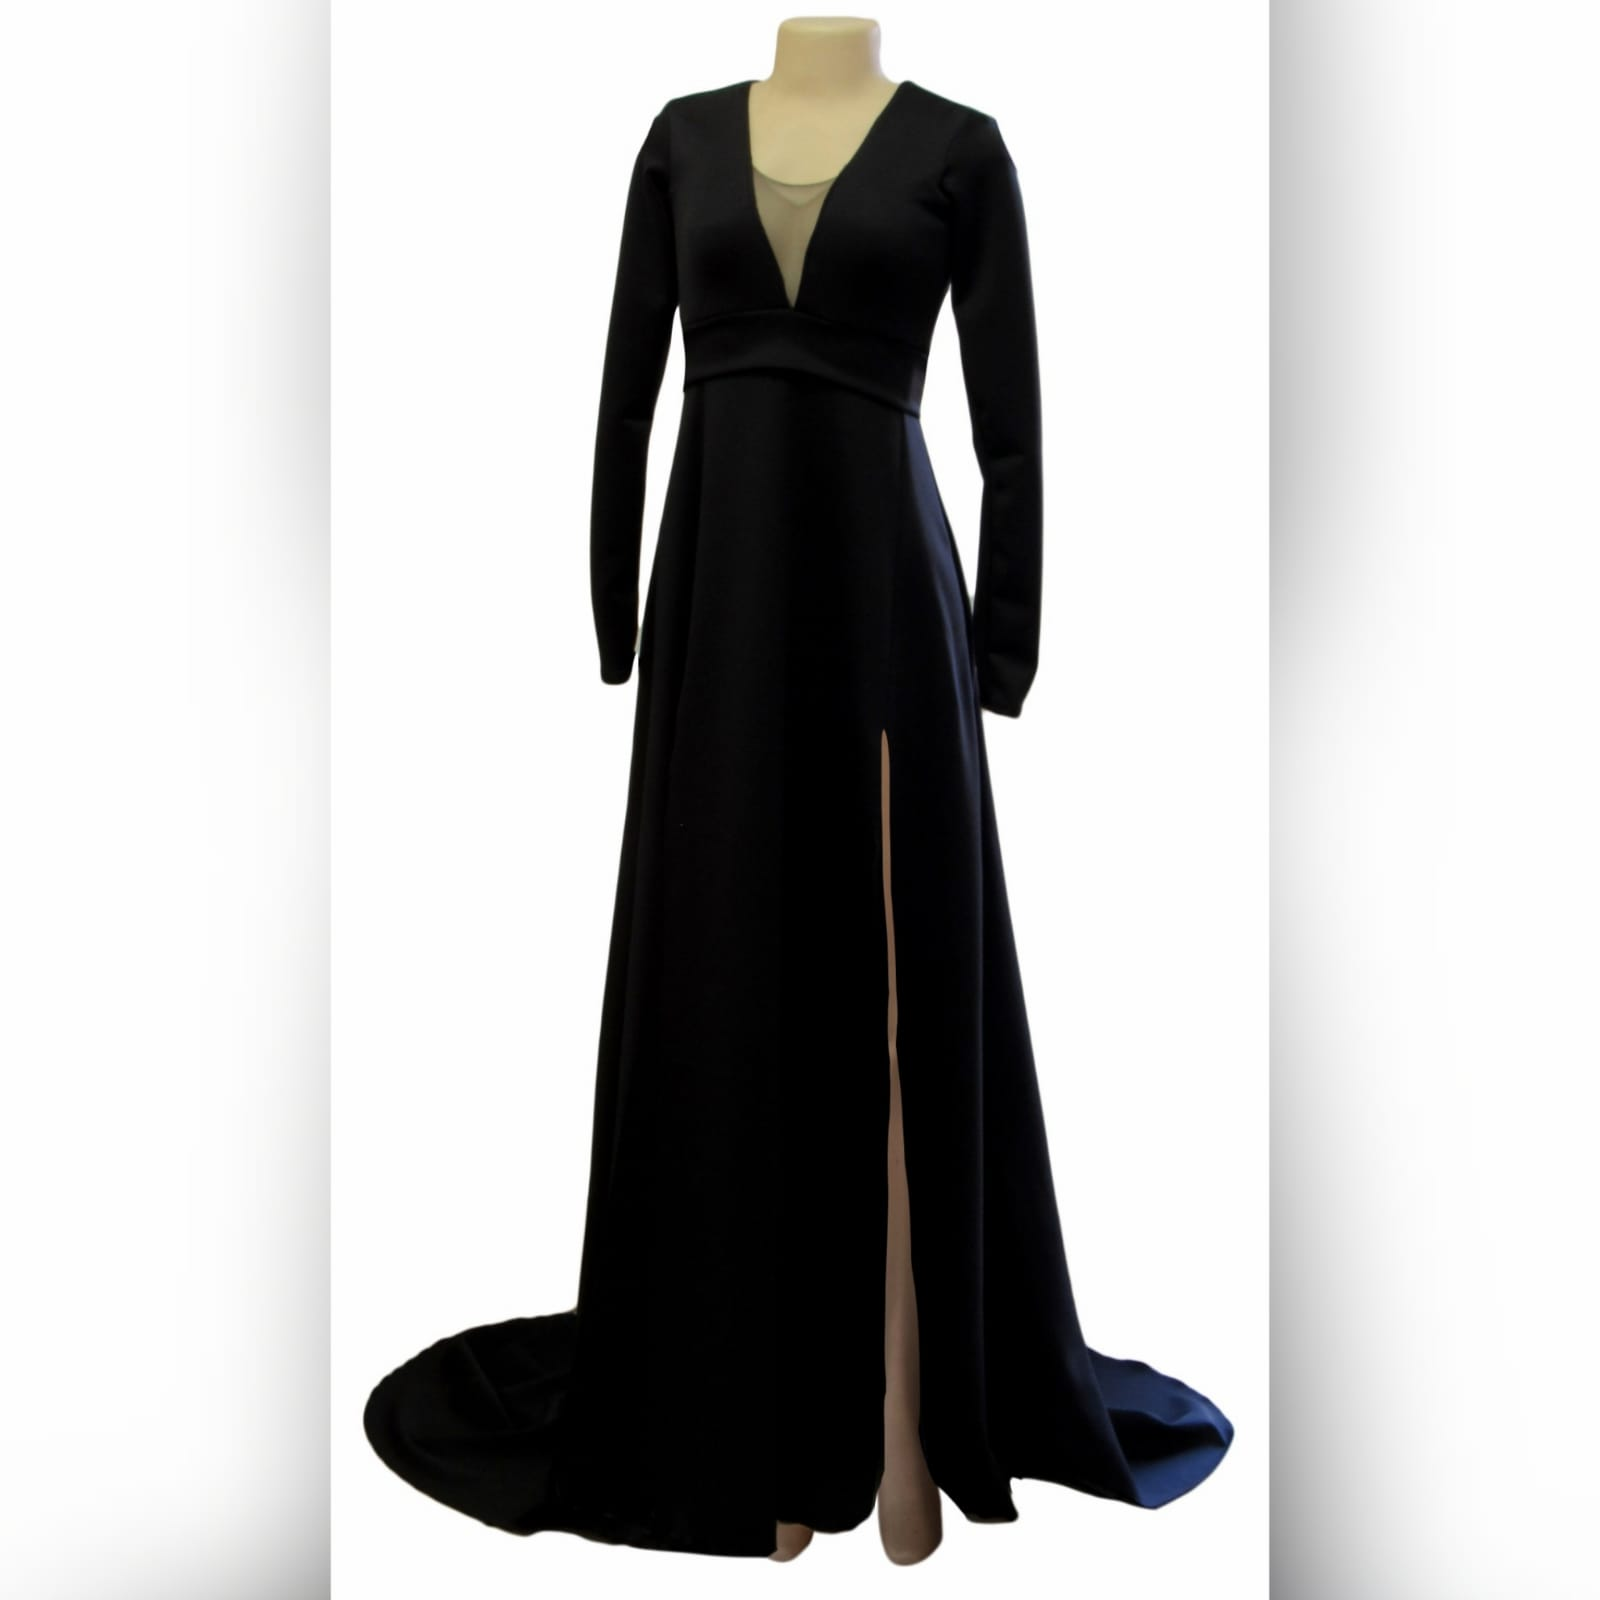 Long black a-line formal dress 5 long black a-line formal dress with an illusion v neckline, long sleeves a slit and a train.